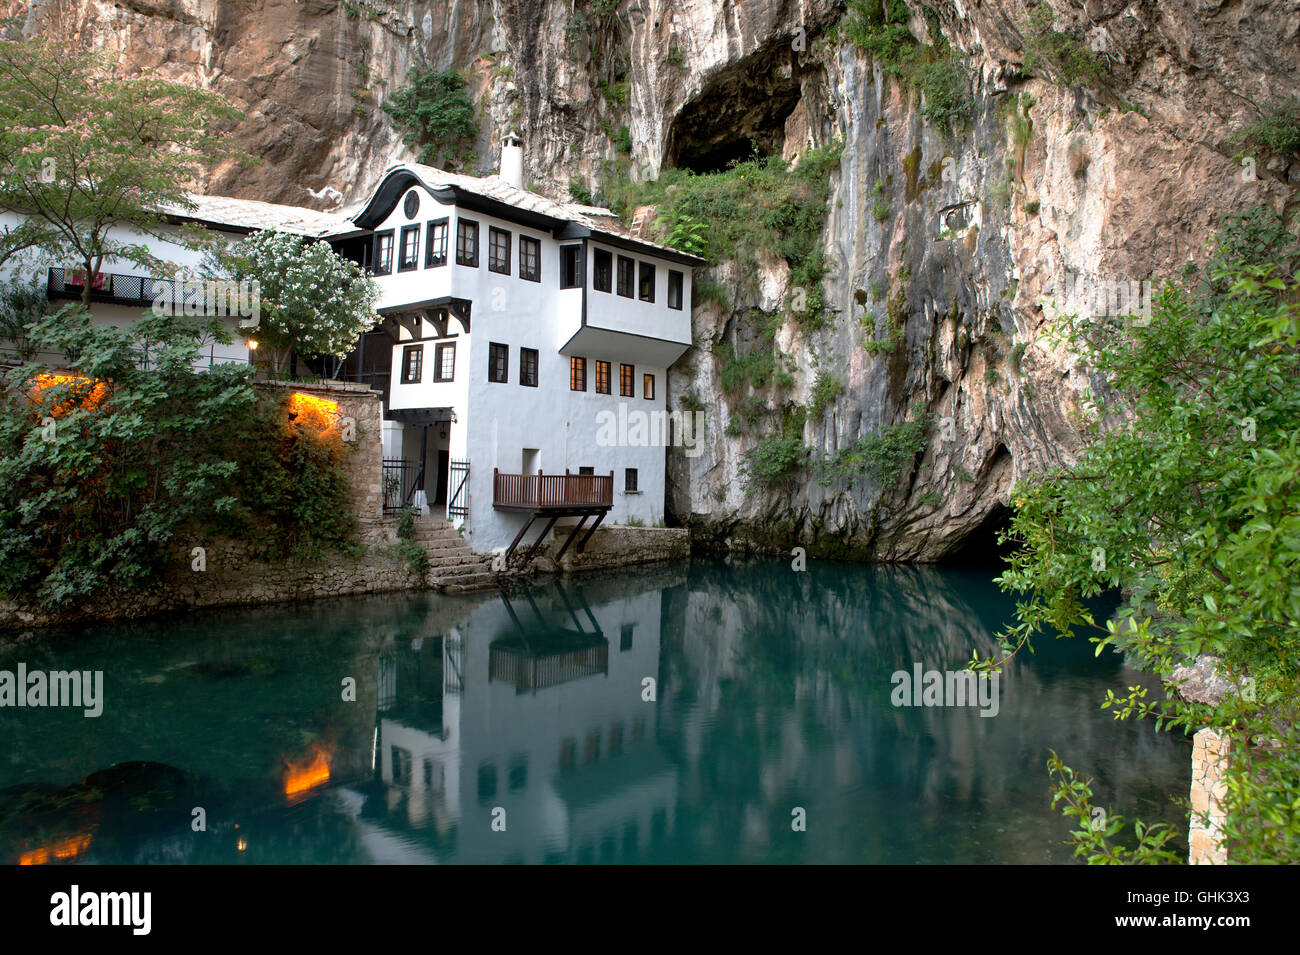 Small nice village Blagaj on Buna spring and waterfall in Bosnia and Herzegovina - Stock Image